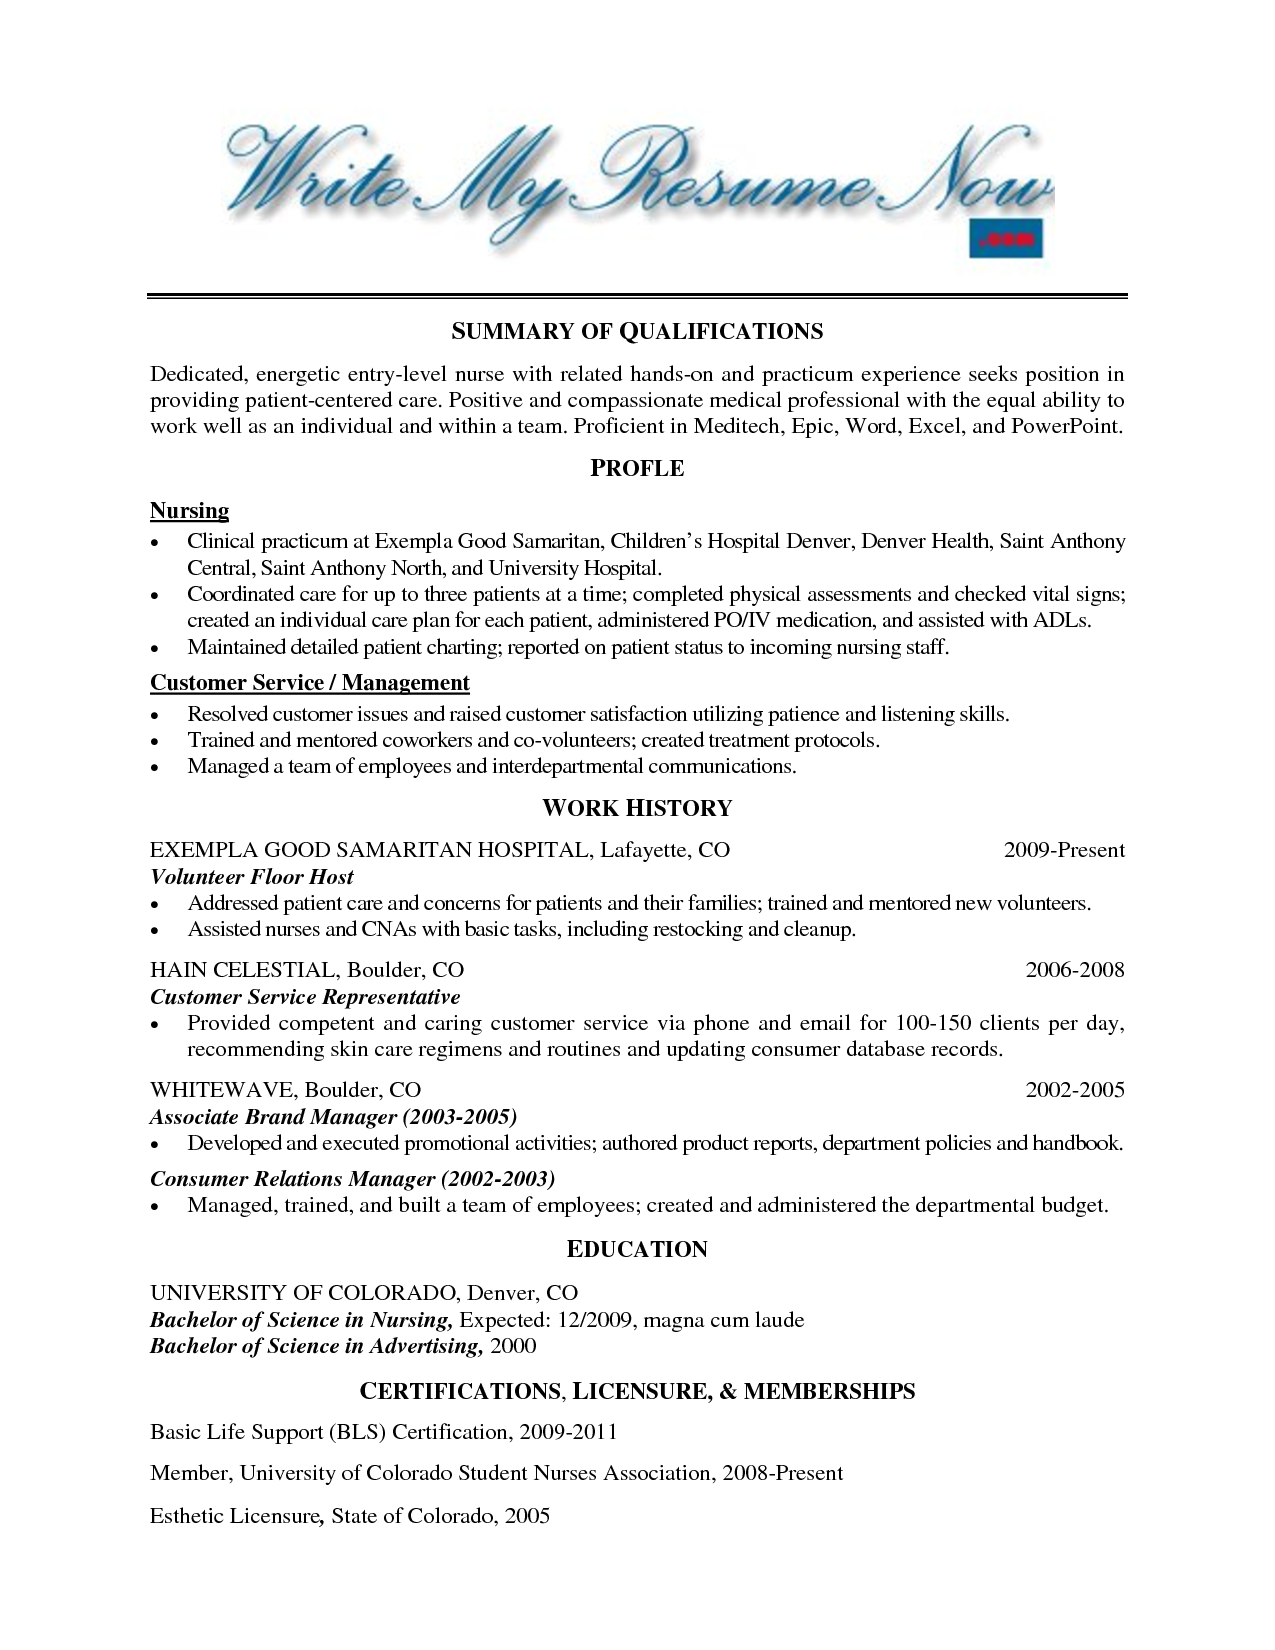 resume Resume With Volunteer Experience Template hospital volunteer resume example httpwww resumecareer info experience sample volunteering helps game programmer free samples blue sky resumes best home design id